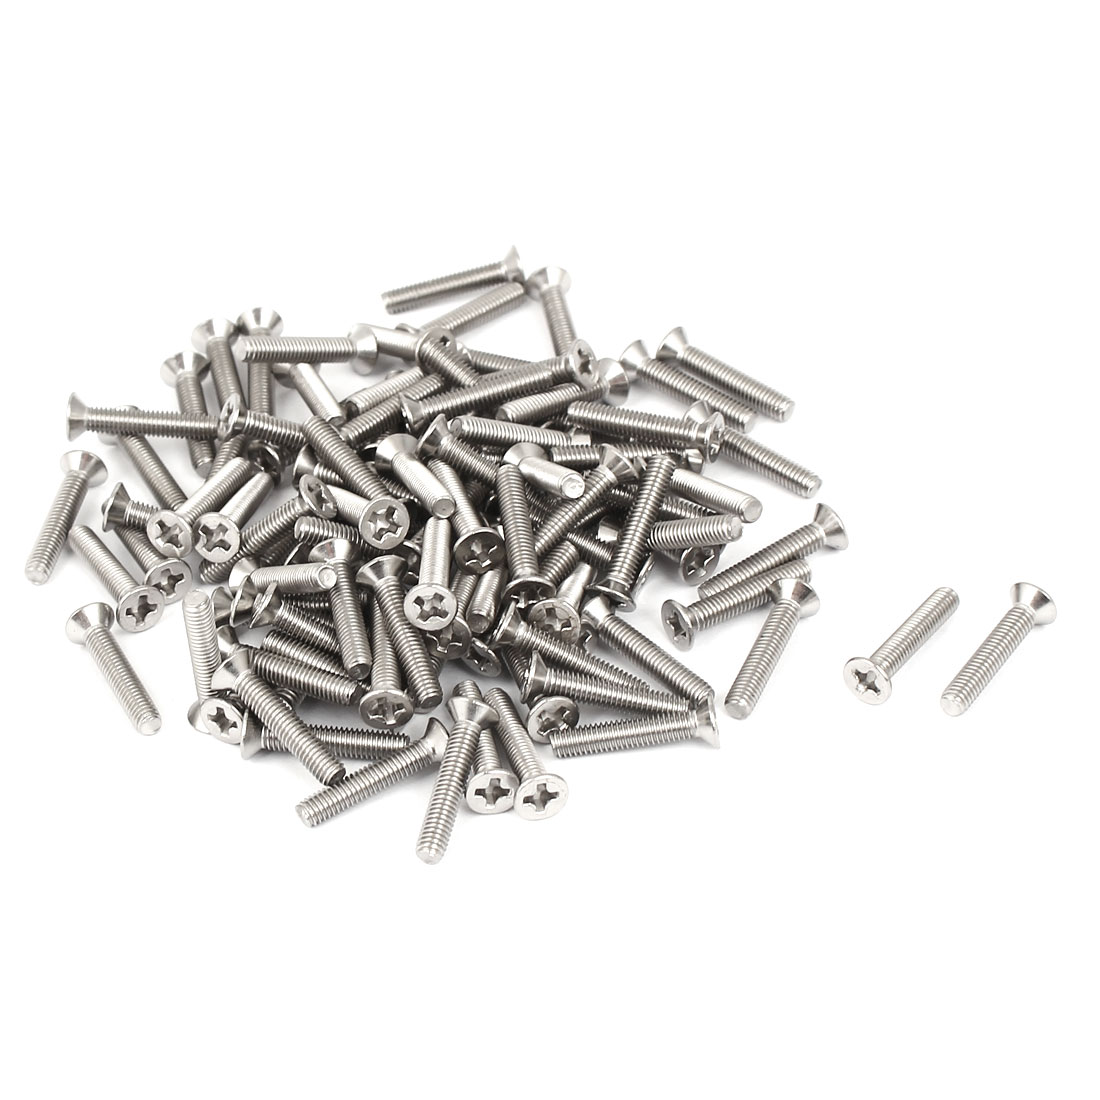 M3x16mm 304 Stainless Steel Phillips Flat Countersunk Head Machine Screws 100pcs